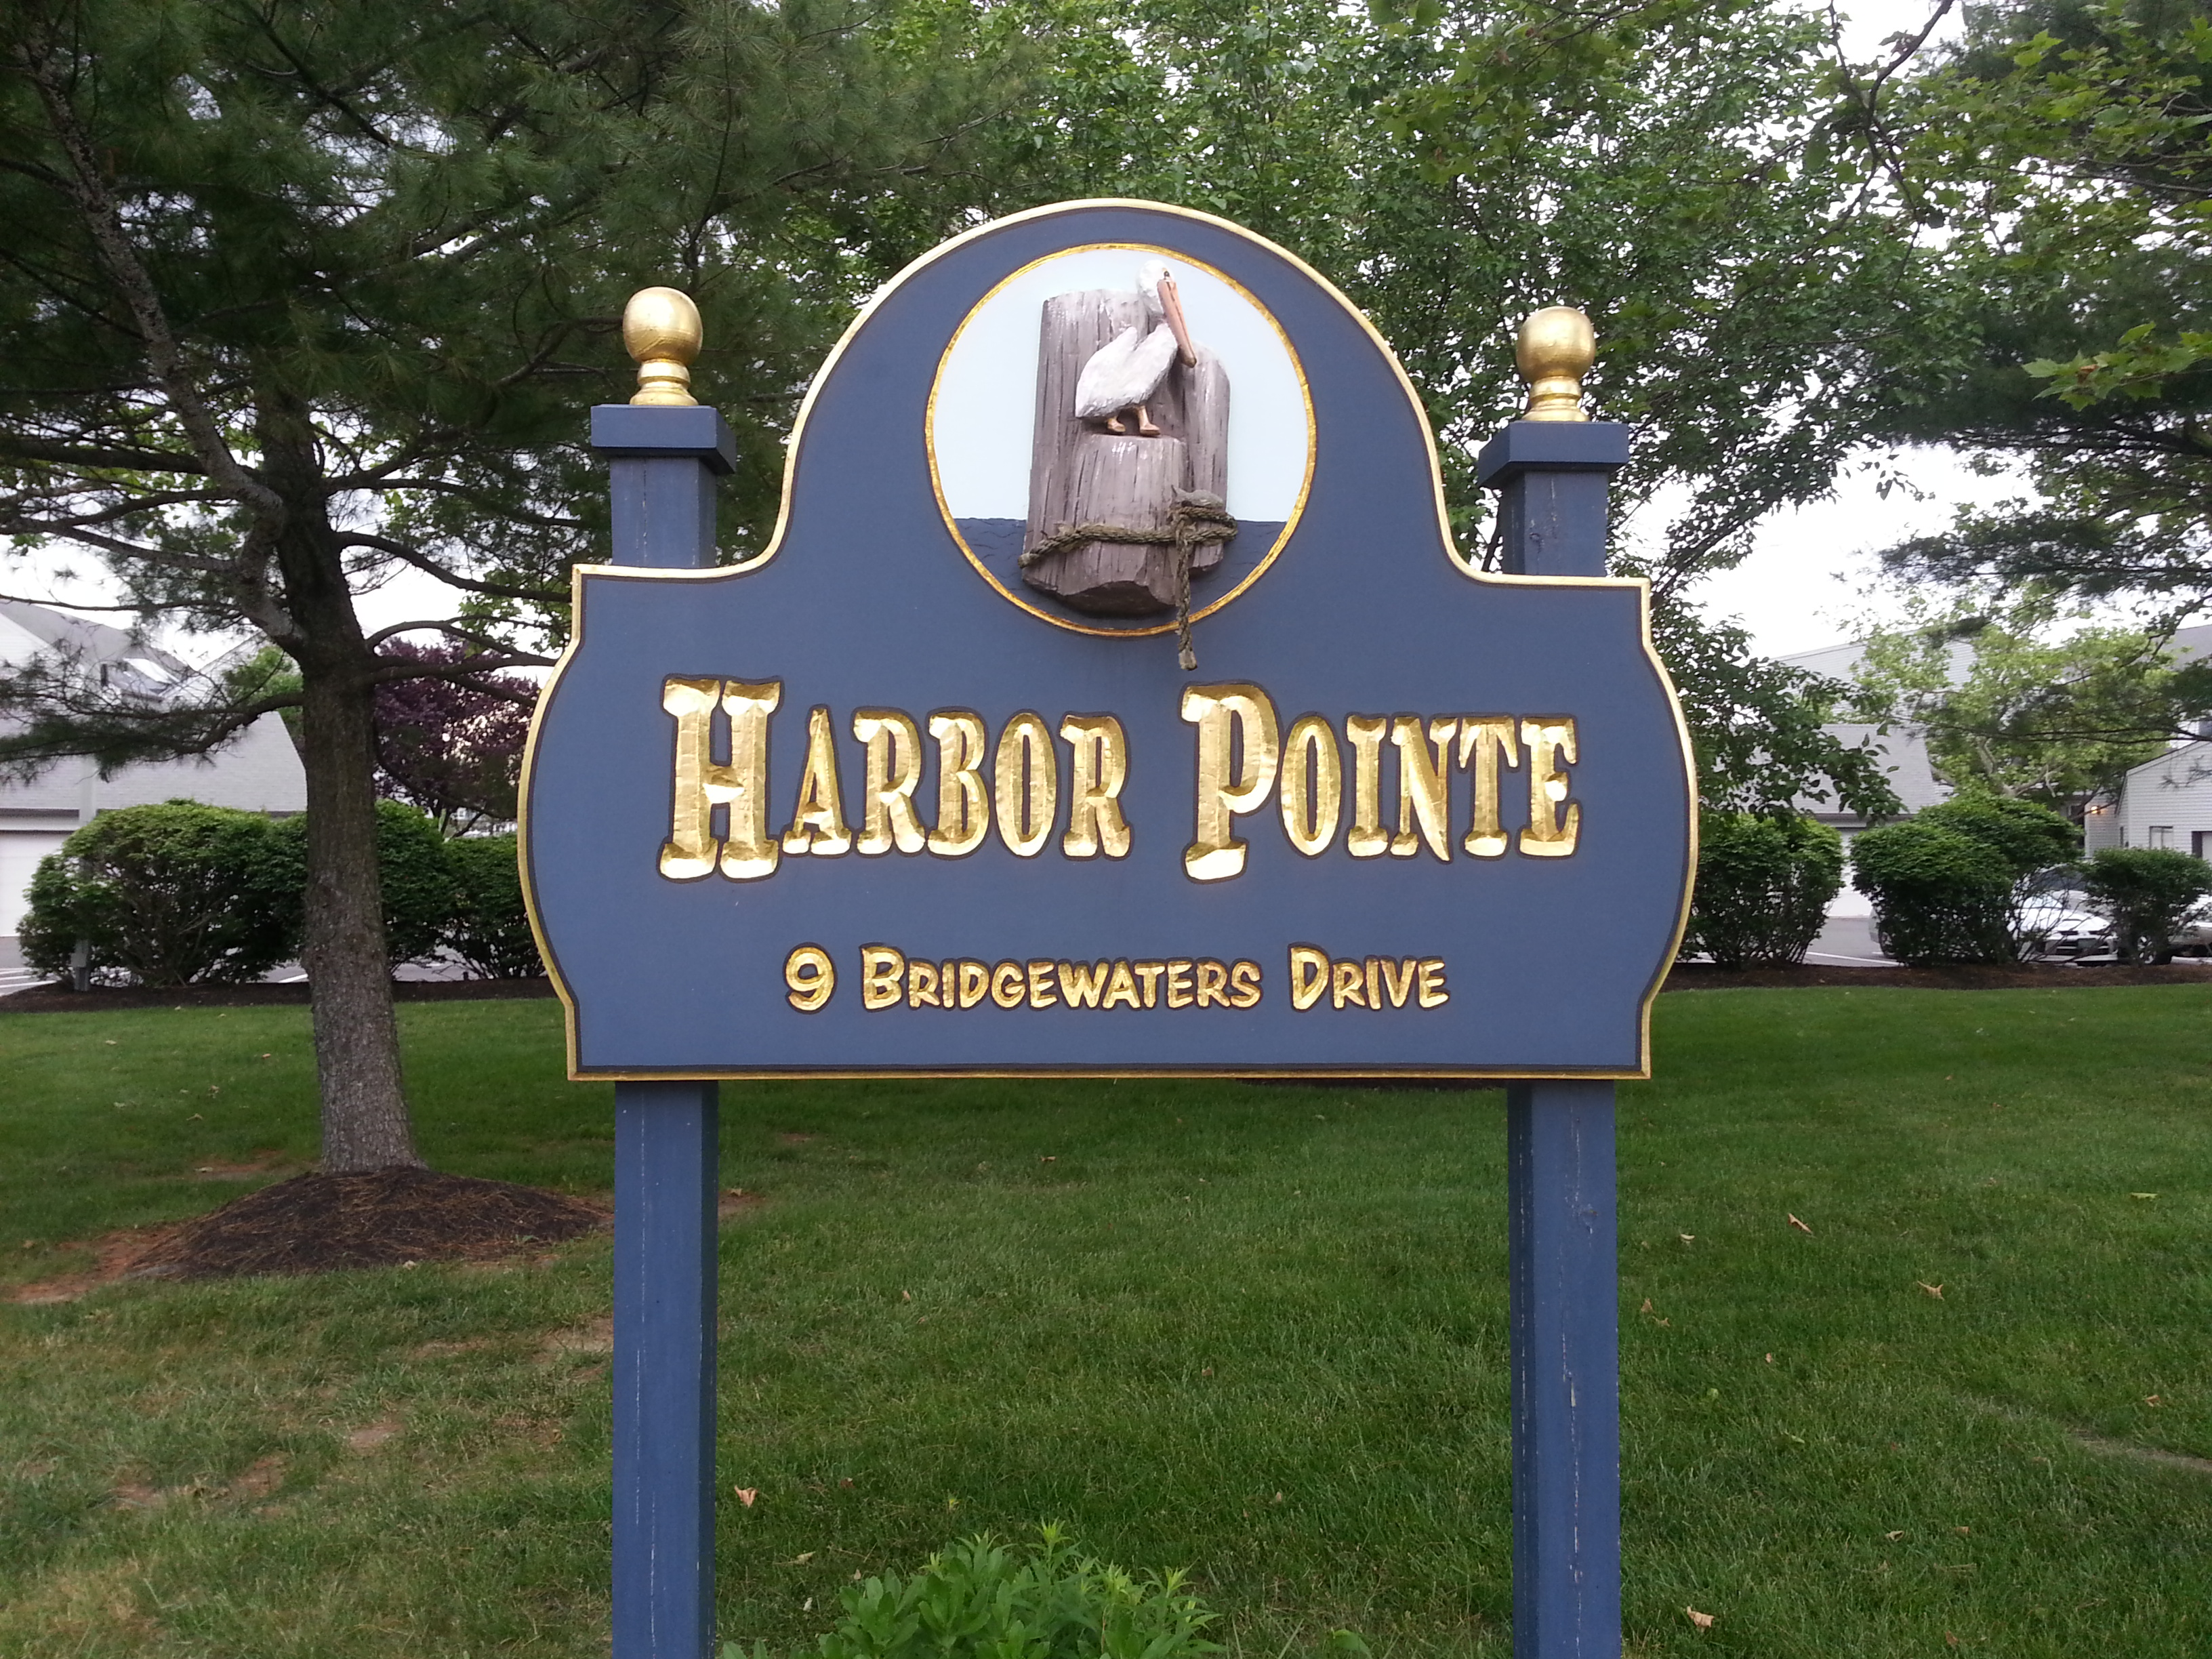 Harbor Pointe Condominium is located at 9 Bridgewaters Drive, Oceanport, NJ 07757